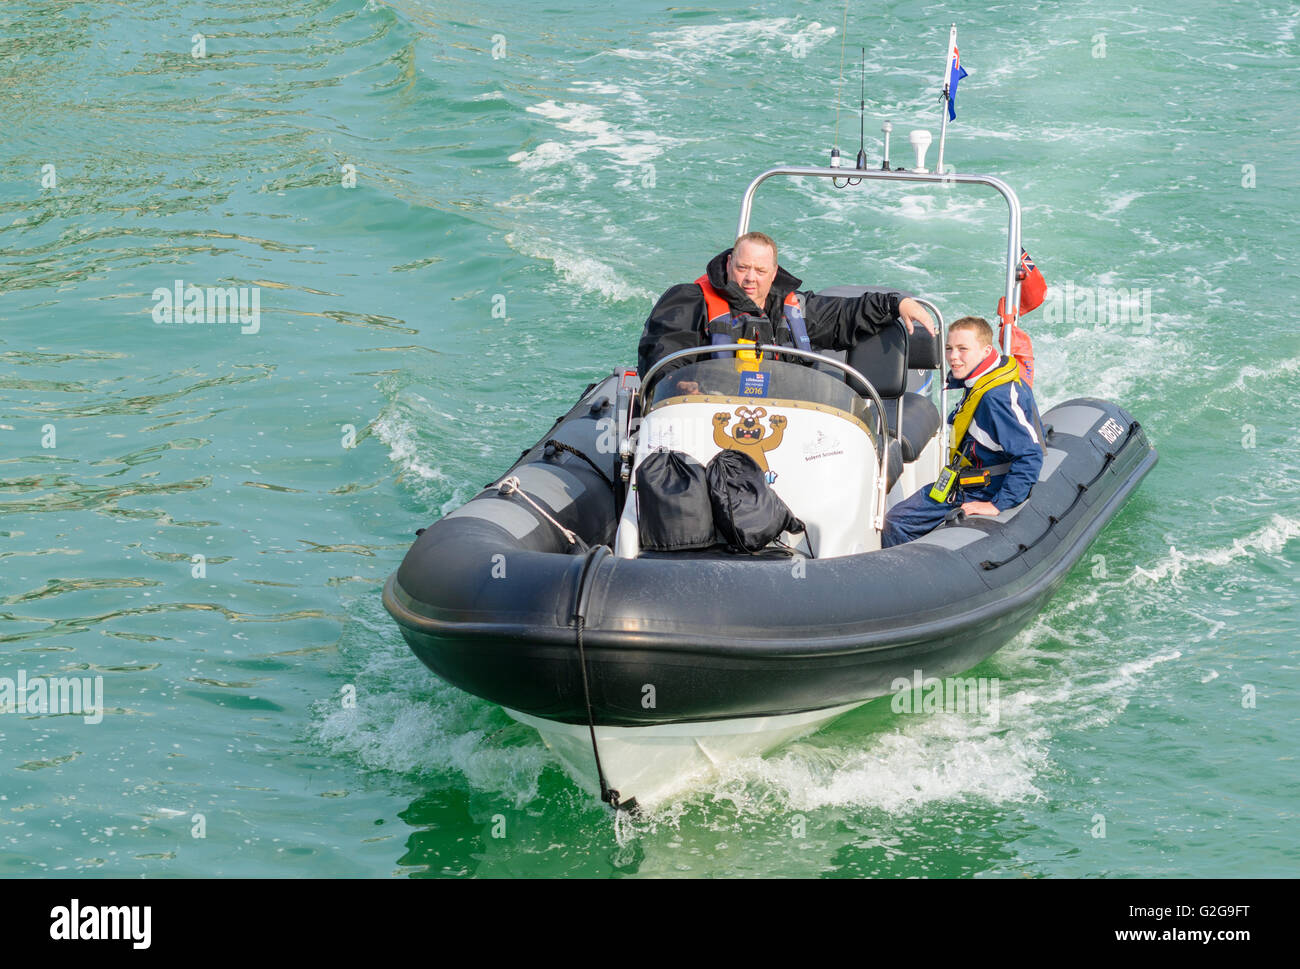 Inflatable rib boat speeding along a river. - Stock Image